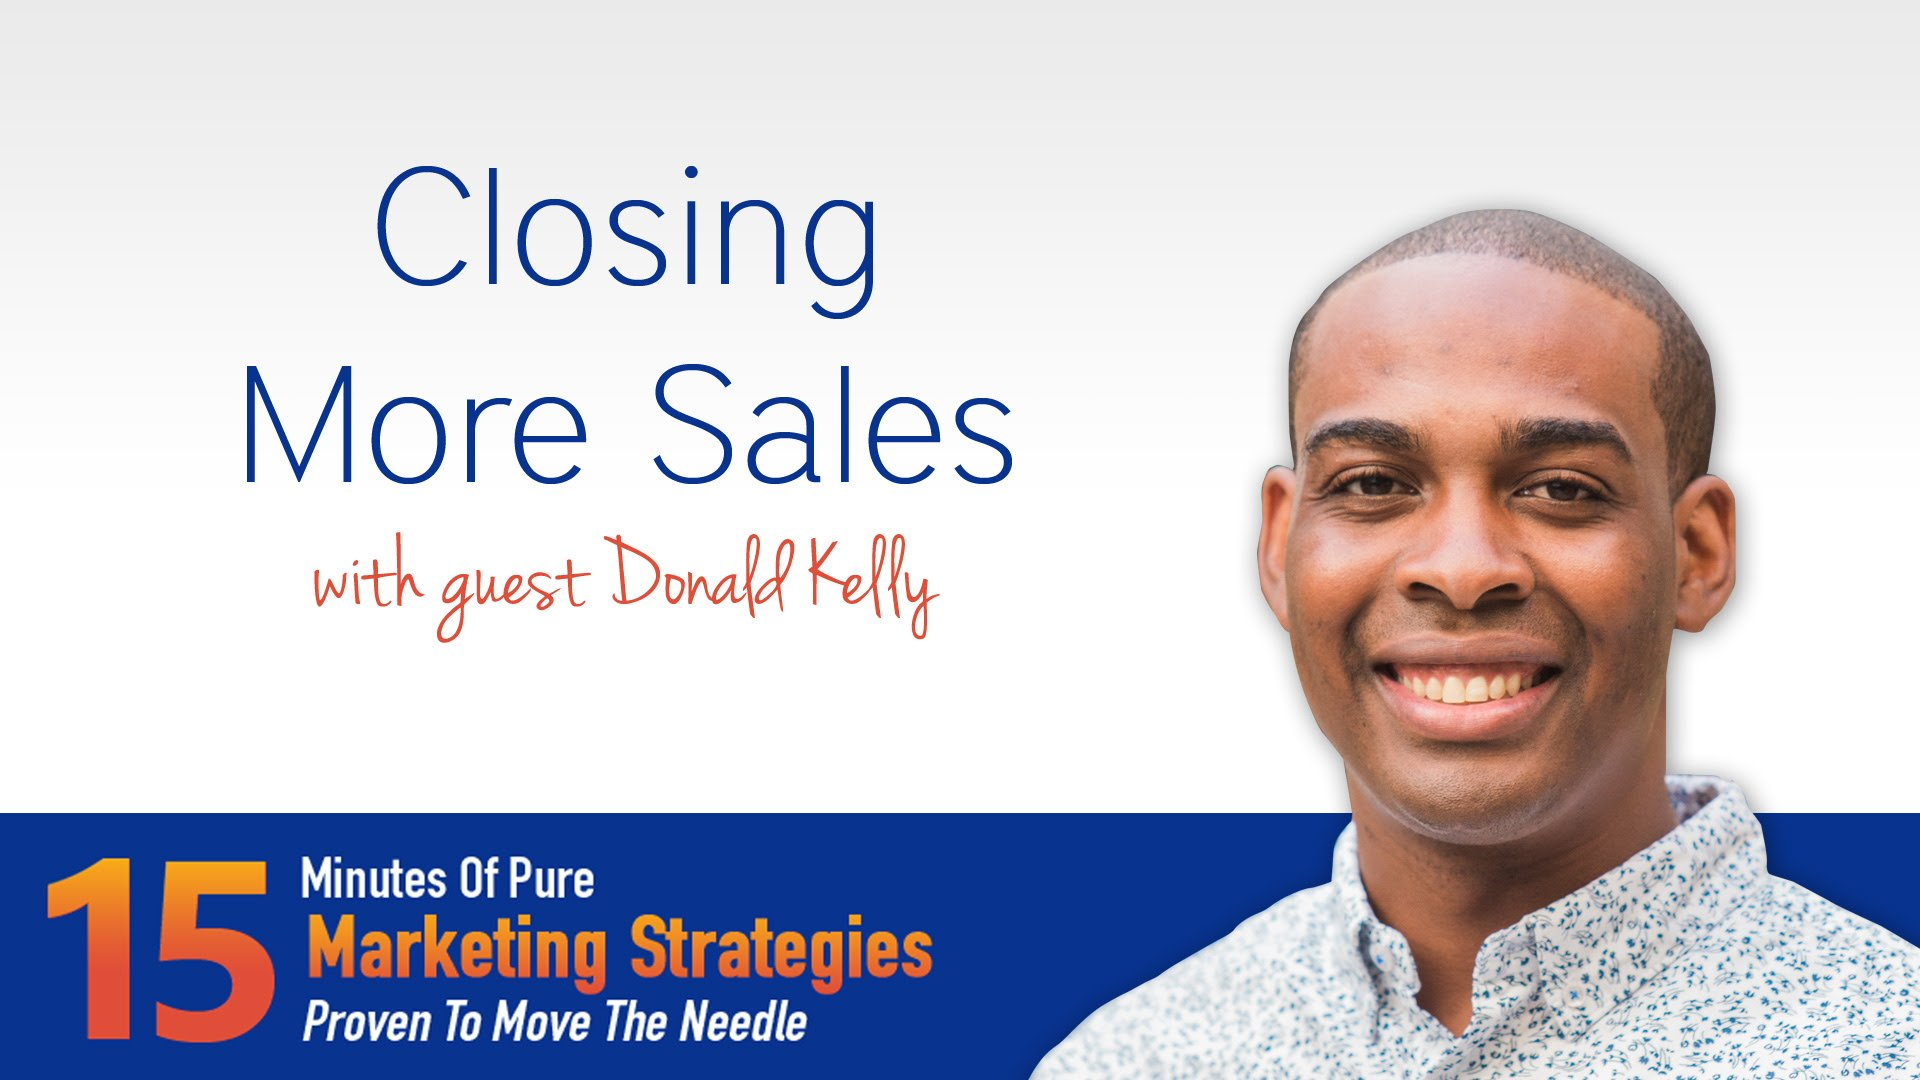 Closing More Sales